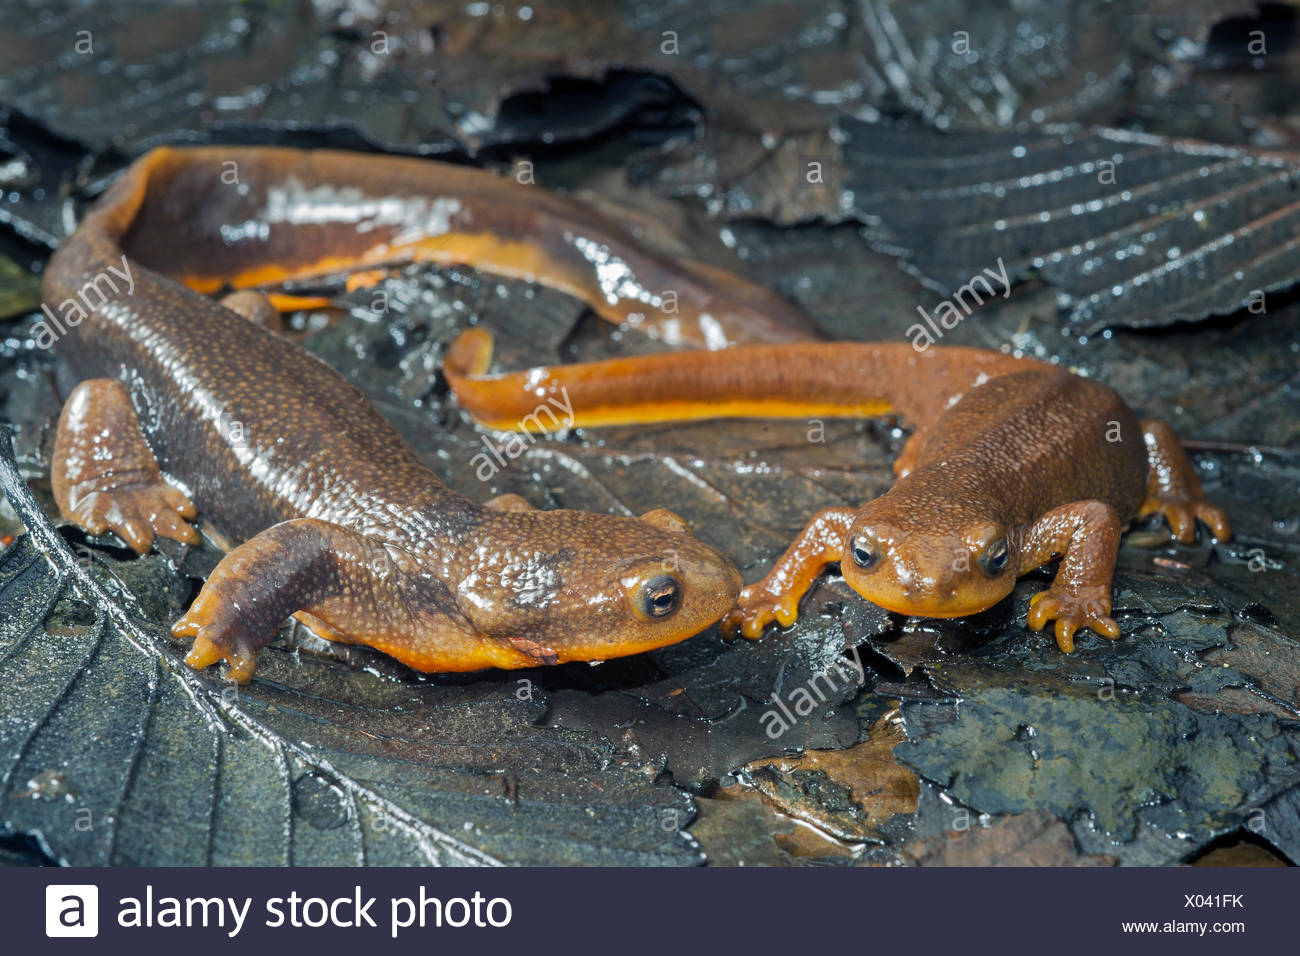 Courting rough-skinned newts (Taricha granulosa), temperate rainforests, central coast British Columbia, Bella Coola, Canada - Stock Image